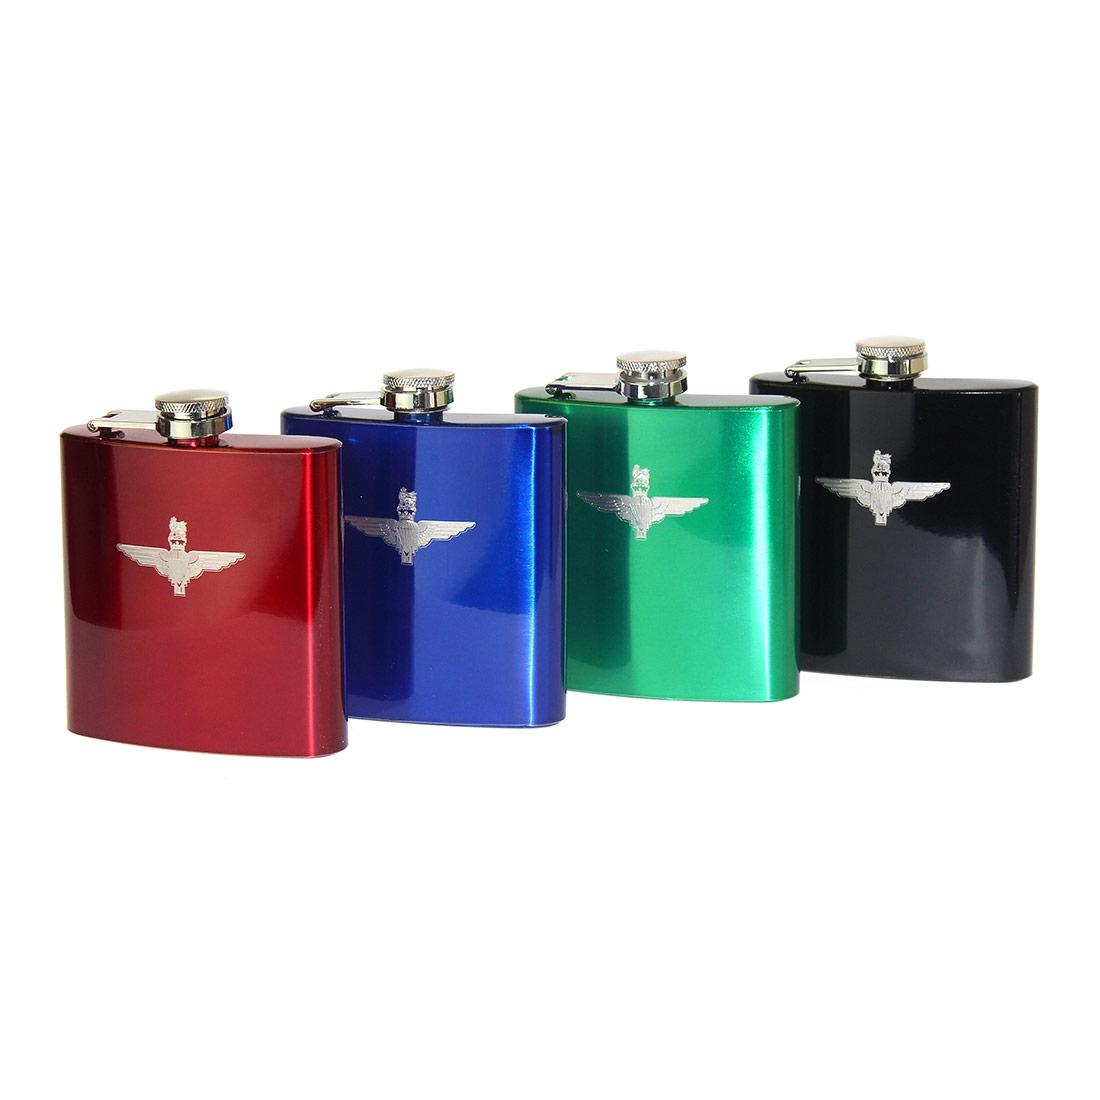 Engraved Hip Flask in Presentation Box - Para or Pegasus